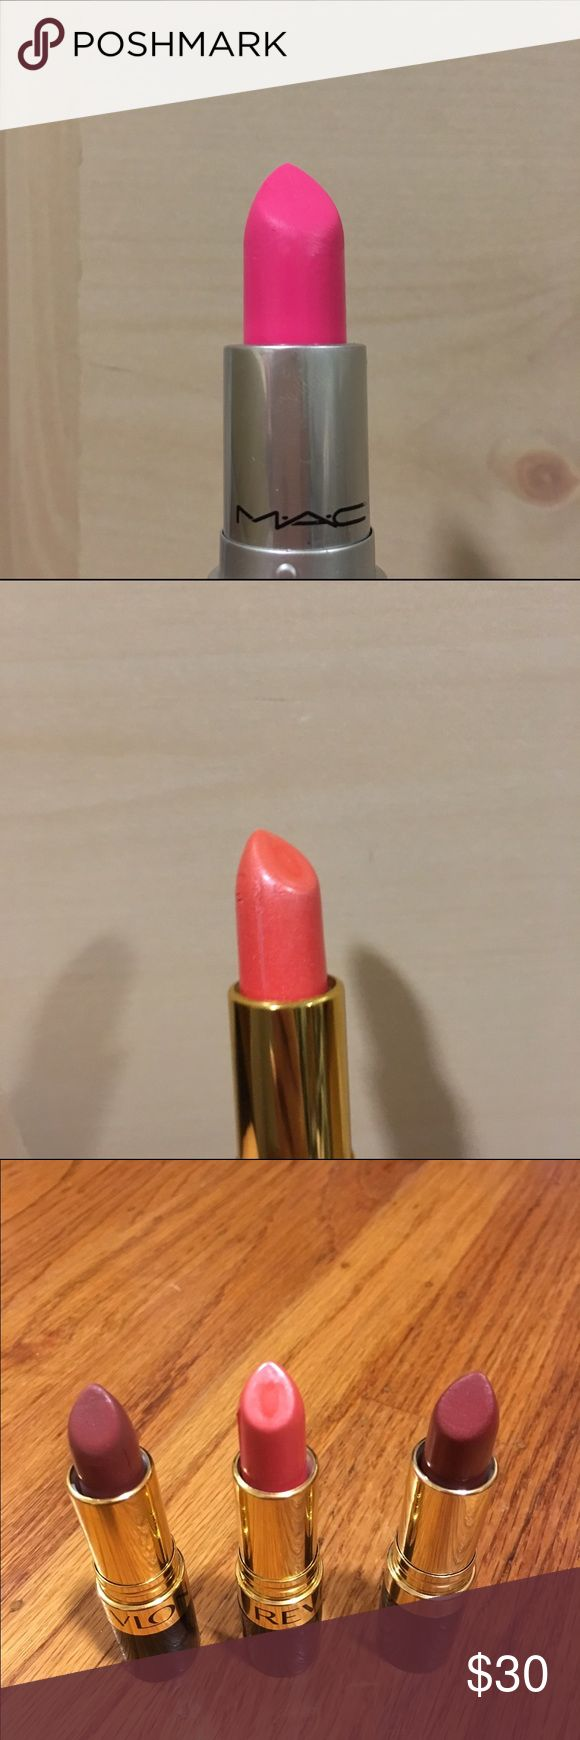 Mac Lipstick & Revlon Lipsticks MAC lipstick in candy yum yum, Revlon lipstick in rum raisin, Revlon lipstick in spicy cinnamon, Revlon lipstick in softsilver red. Price negotiable! All swatched on hand once, except softsilver red which is brand new!! It is a beautiful pink shade. All authentic. Feel free to make me an offer & bundle with other listings! This listing includes all 4 lipsticks. MAC Cosmetics Makeup Lipstick